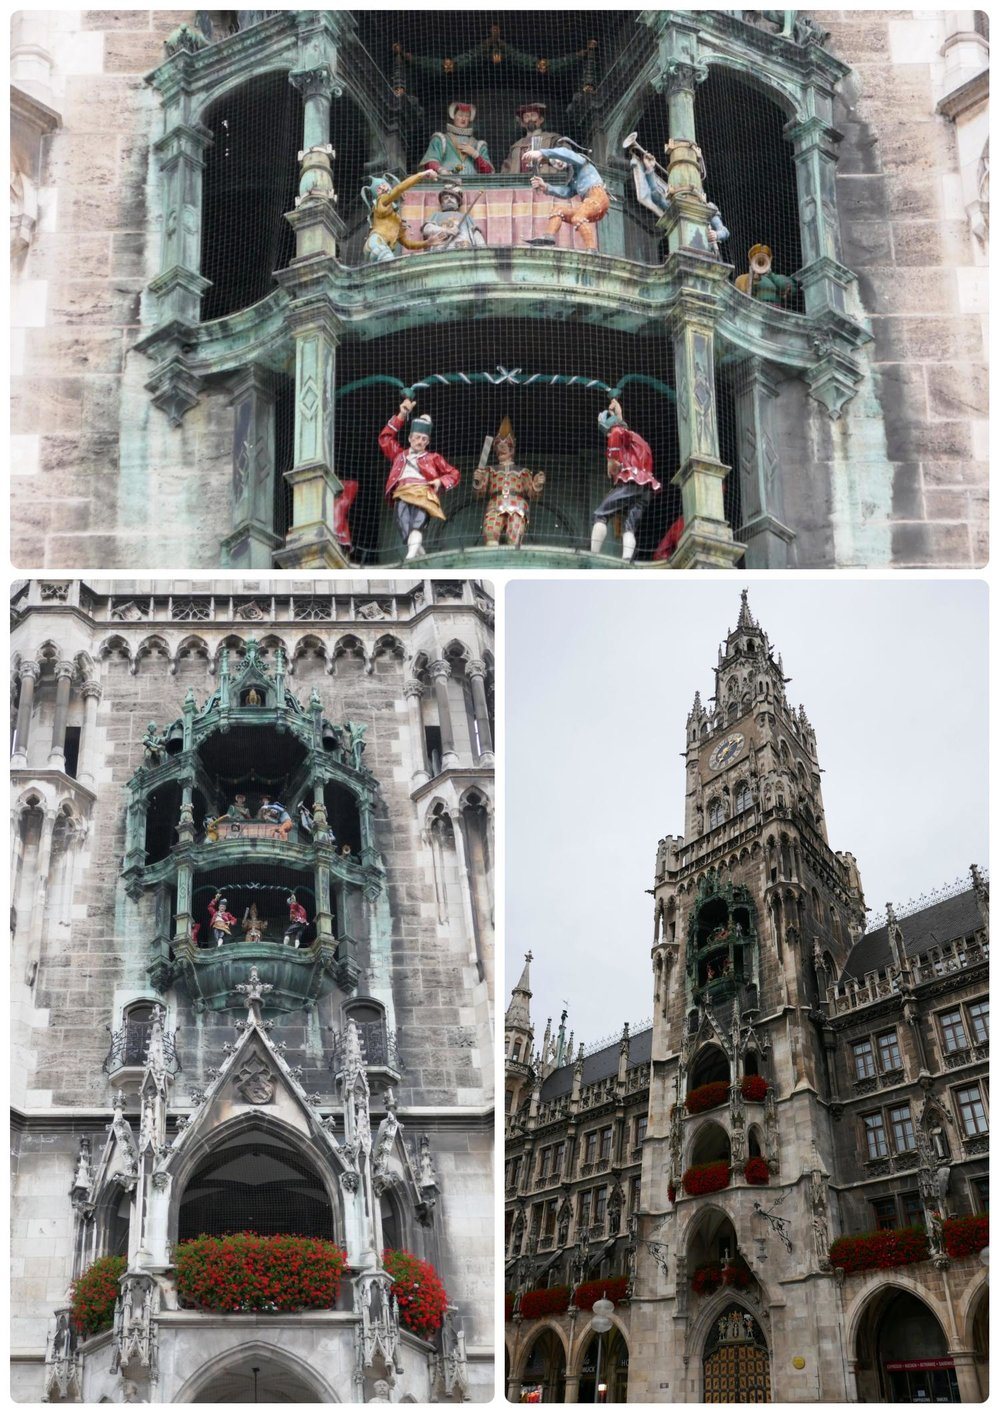 Glockenspiel can be seen in Marenplatz on the Rauthaus building, located in city center Munich, Germany.